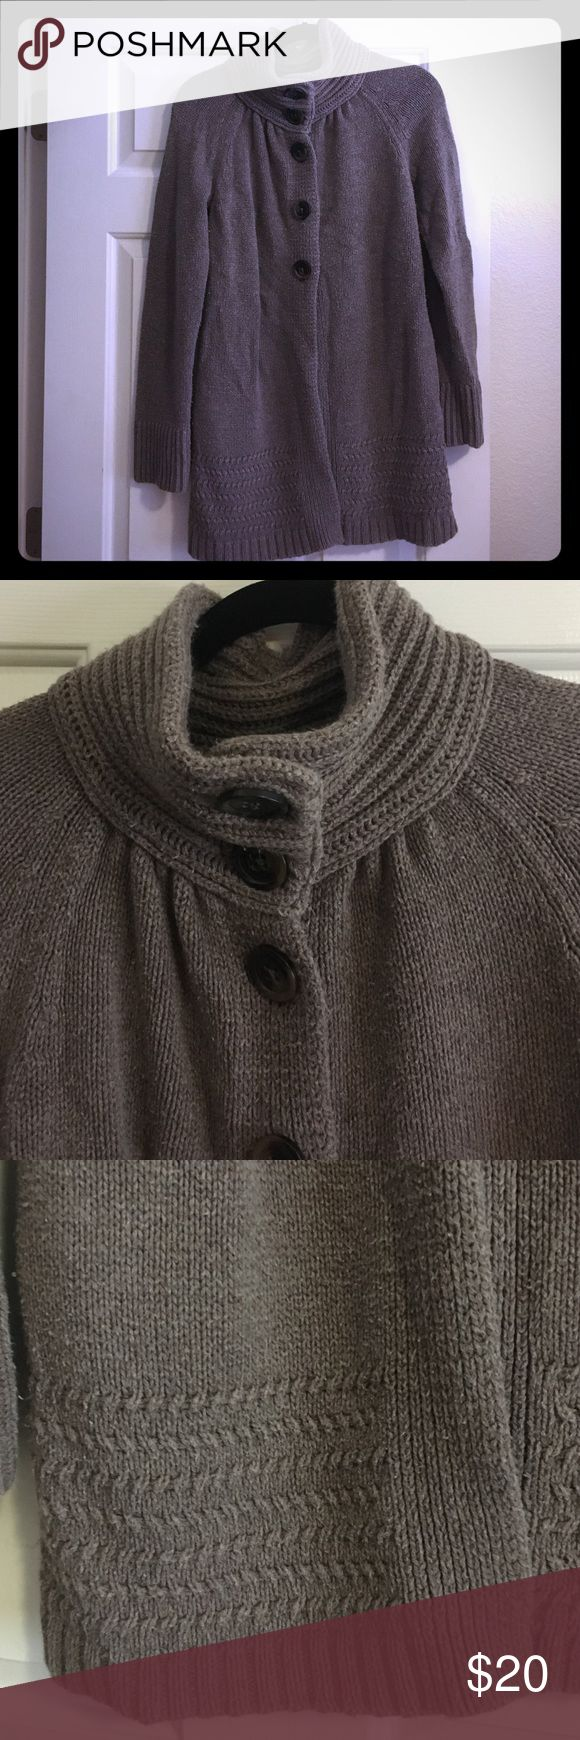 🆕 Old Navy Sweater Coat In used condition. Some light pilling. But lots of life left! Beautiful color.  Will keep you warm in the fall! Old Navy Sweaters Cardigans